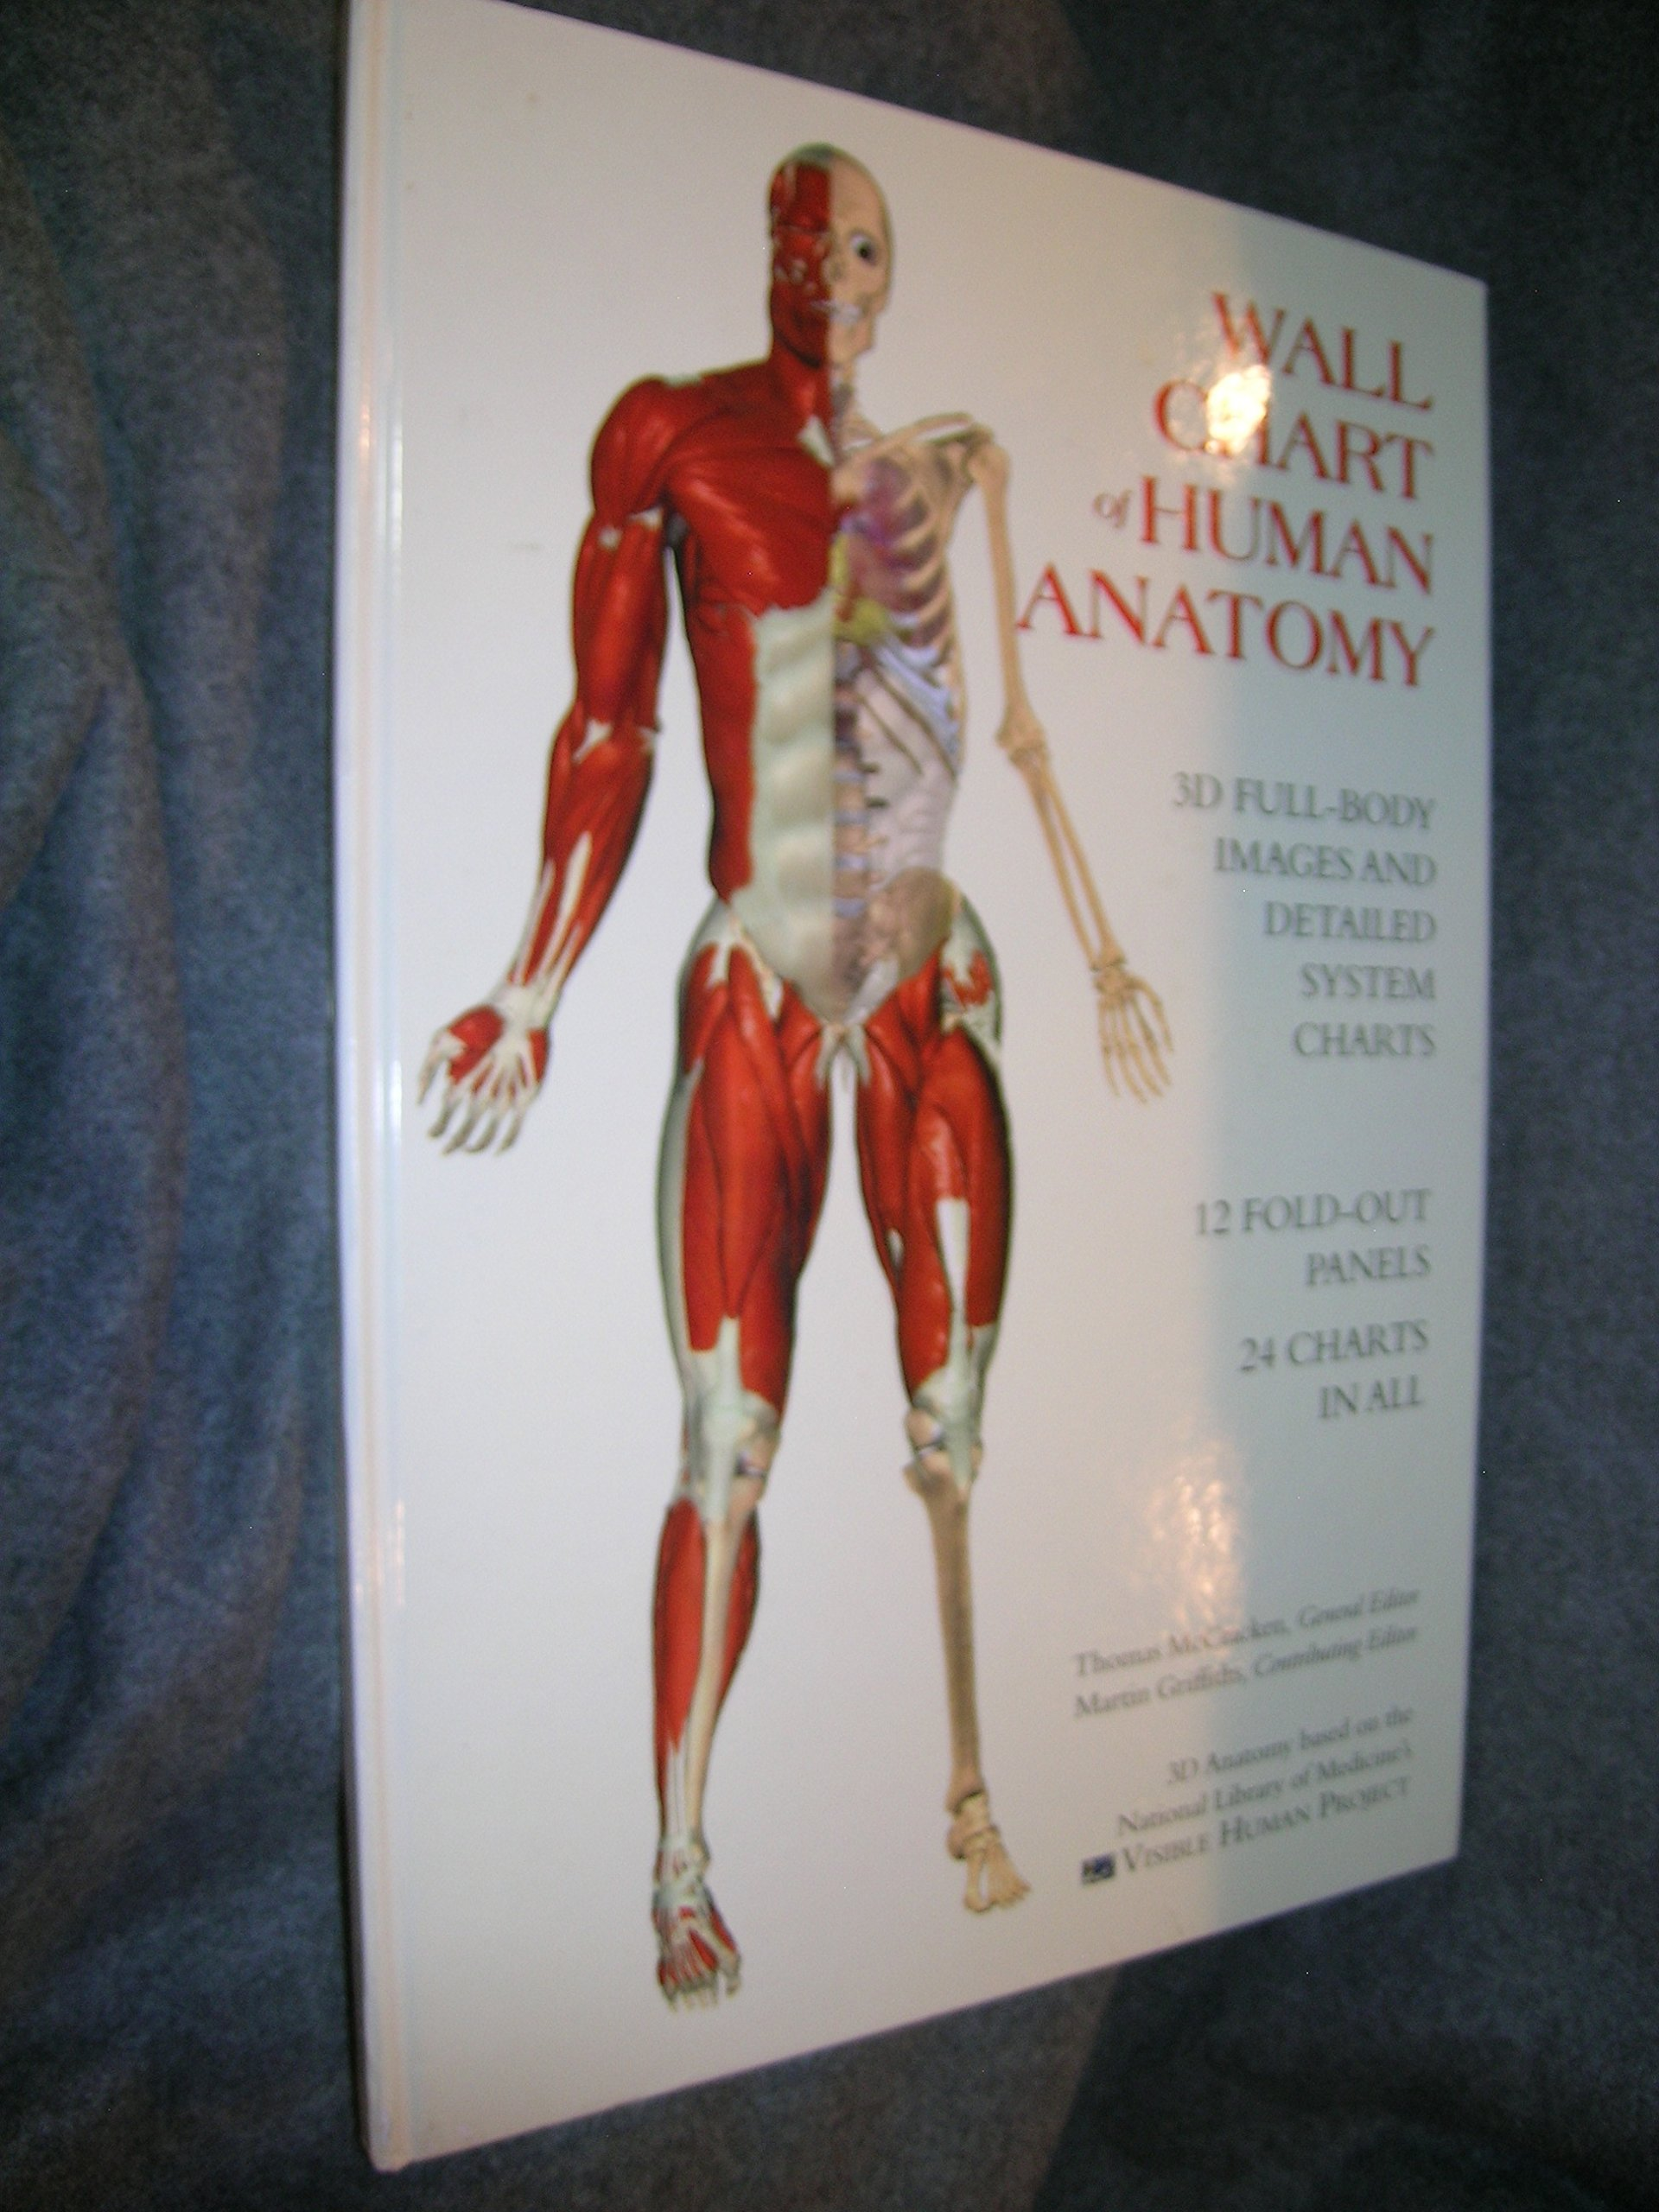 Wallchart of Human Anatomy: 3 D Full-Body Images, Detailed System ...